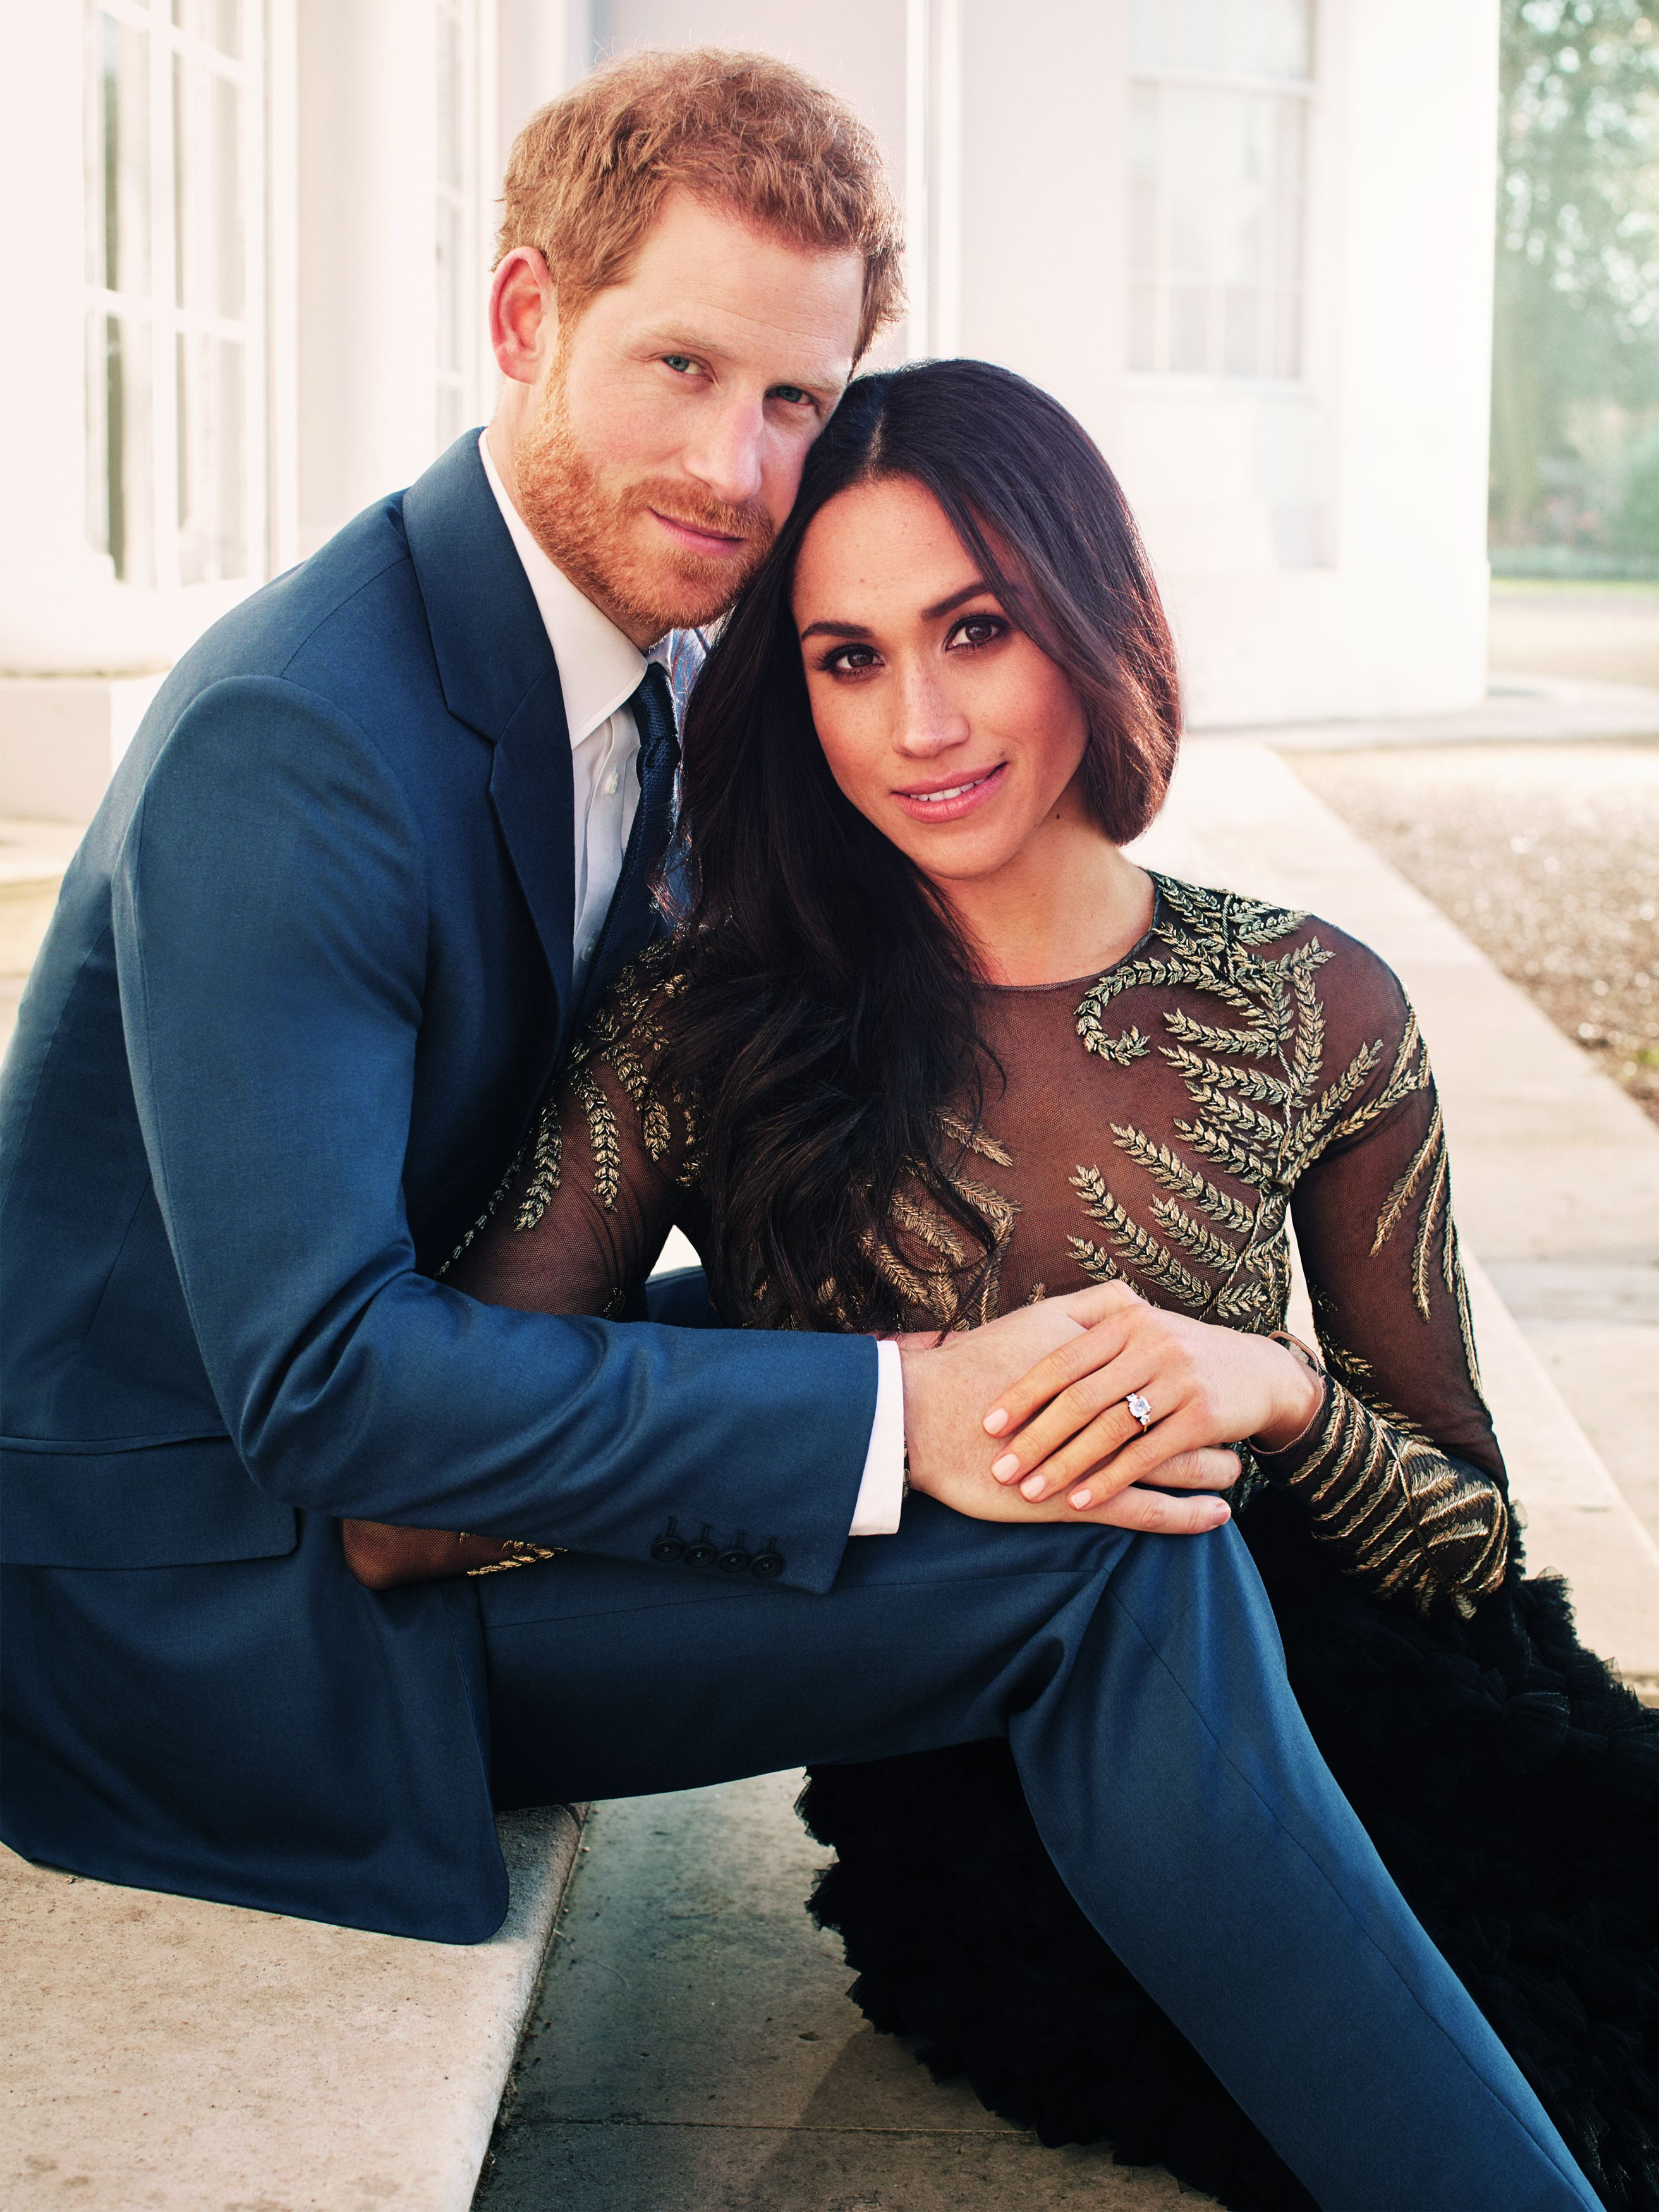 Prince Harry and eghan Markle's official engagement photo November 2017 | Source: Getty Images